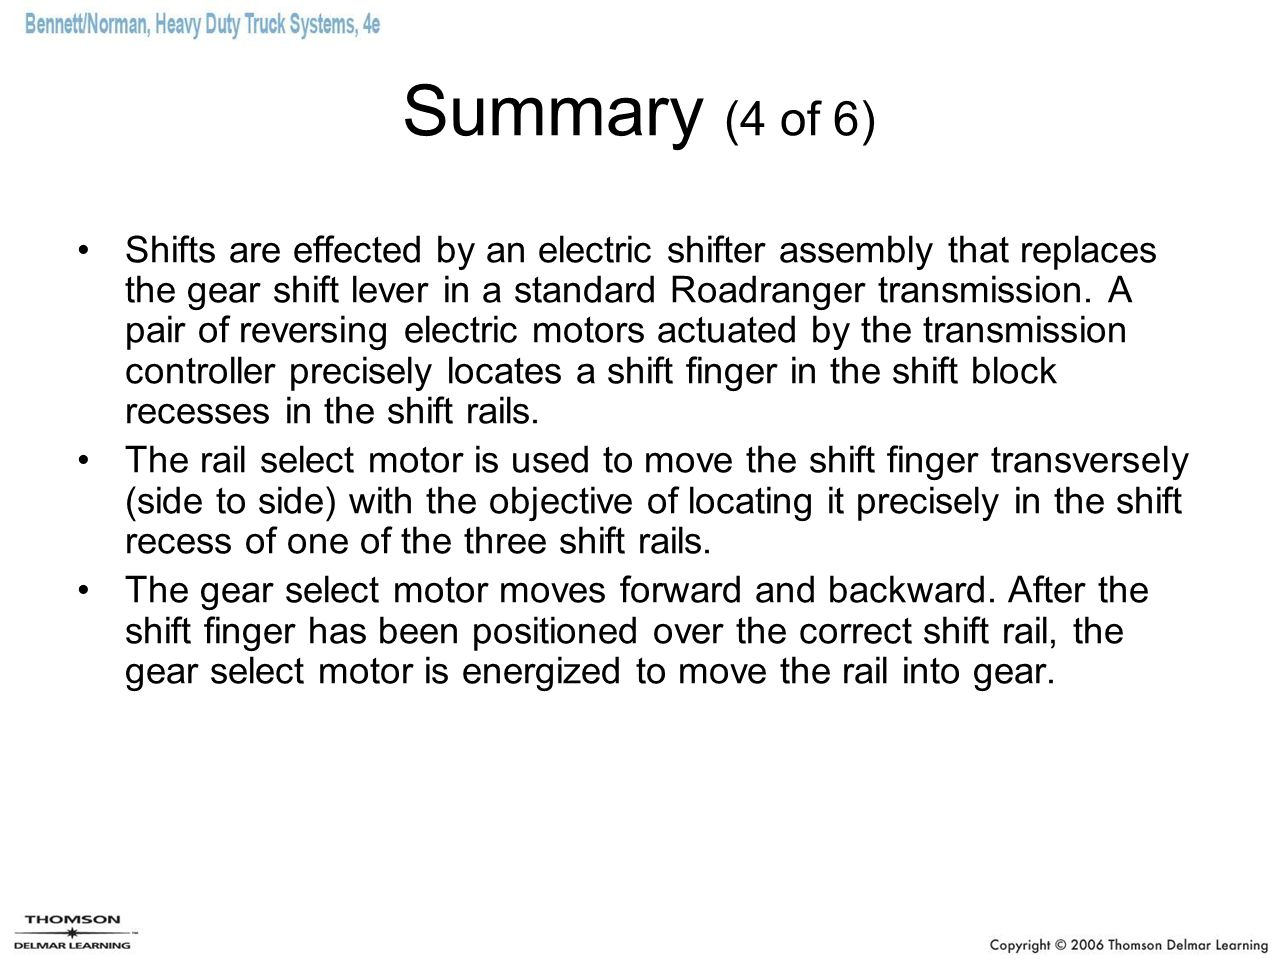 Summary (4 of 6) Shifts are effected by an electric shifter assembly that replaces the gear shift lever in a standard Roadranger transmission. A pair